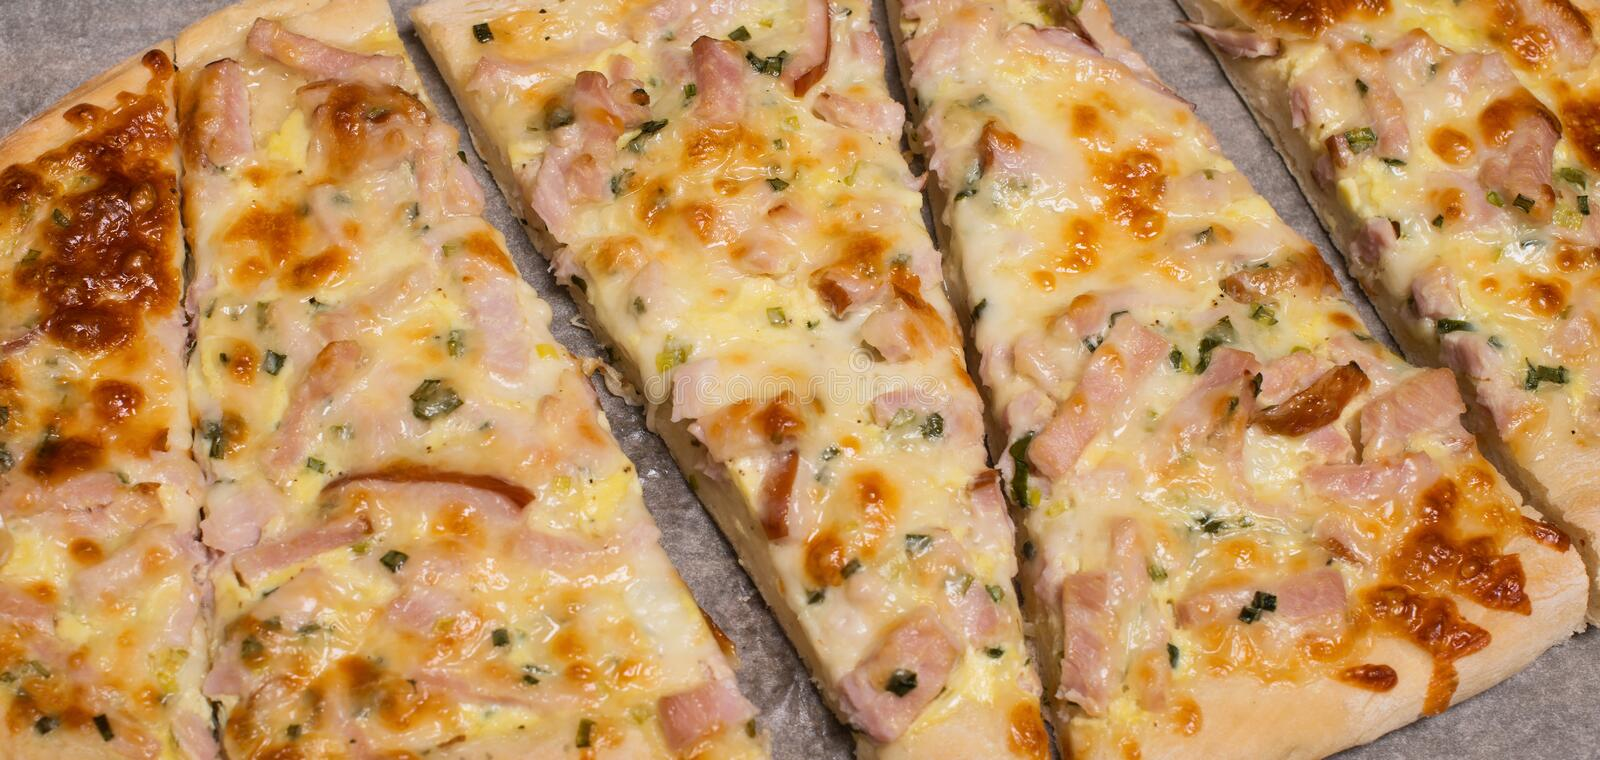 Plan rapproché de Flammkuchen ou de tarte alsacien traditionnel, Flambe au goût âpre photo stock